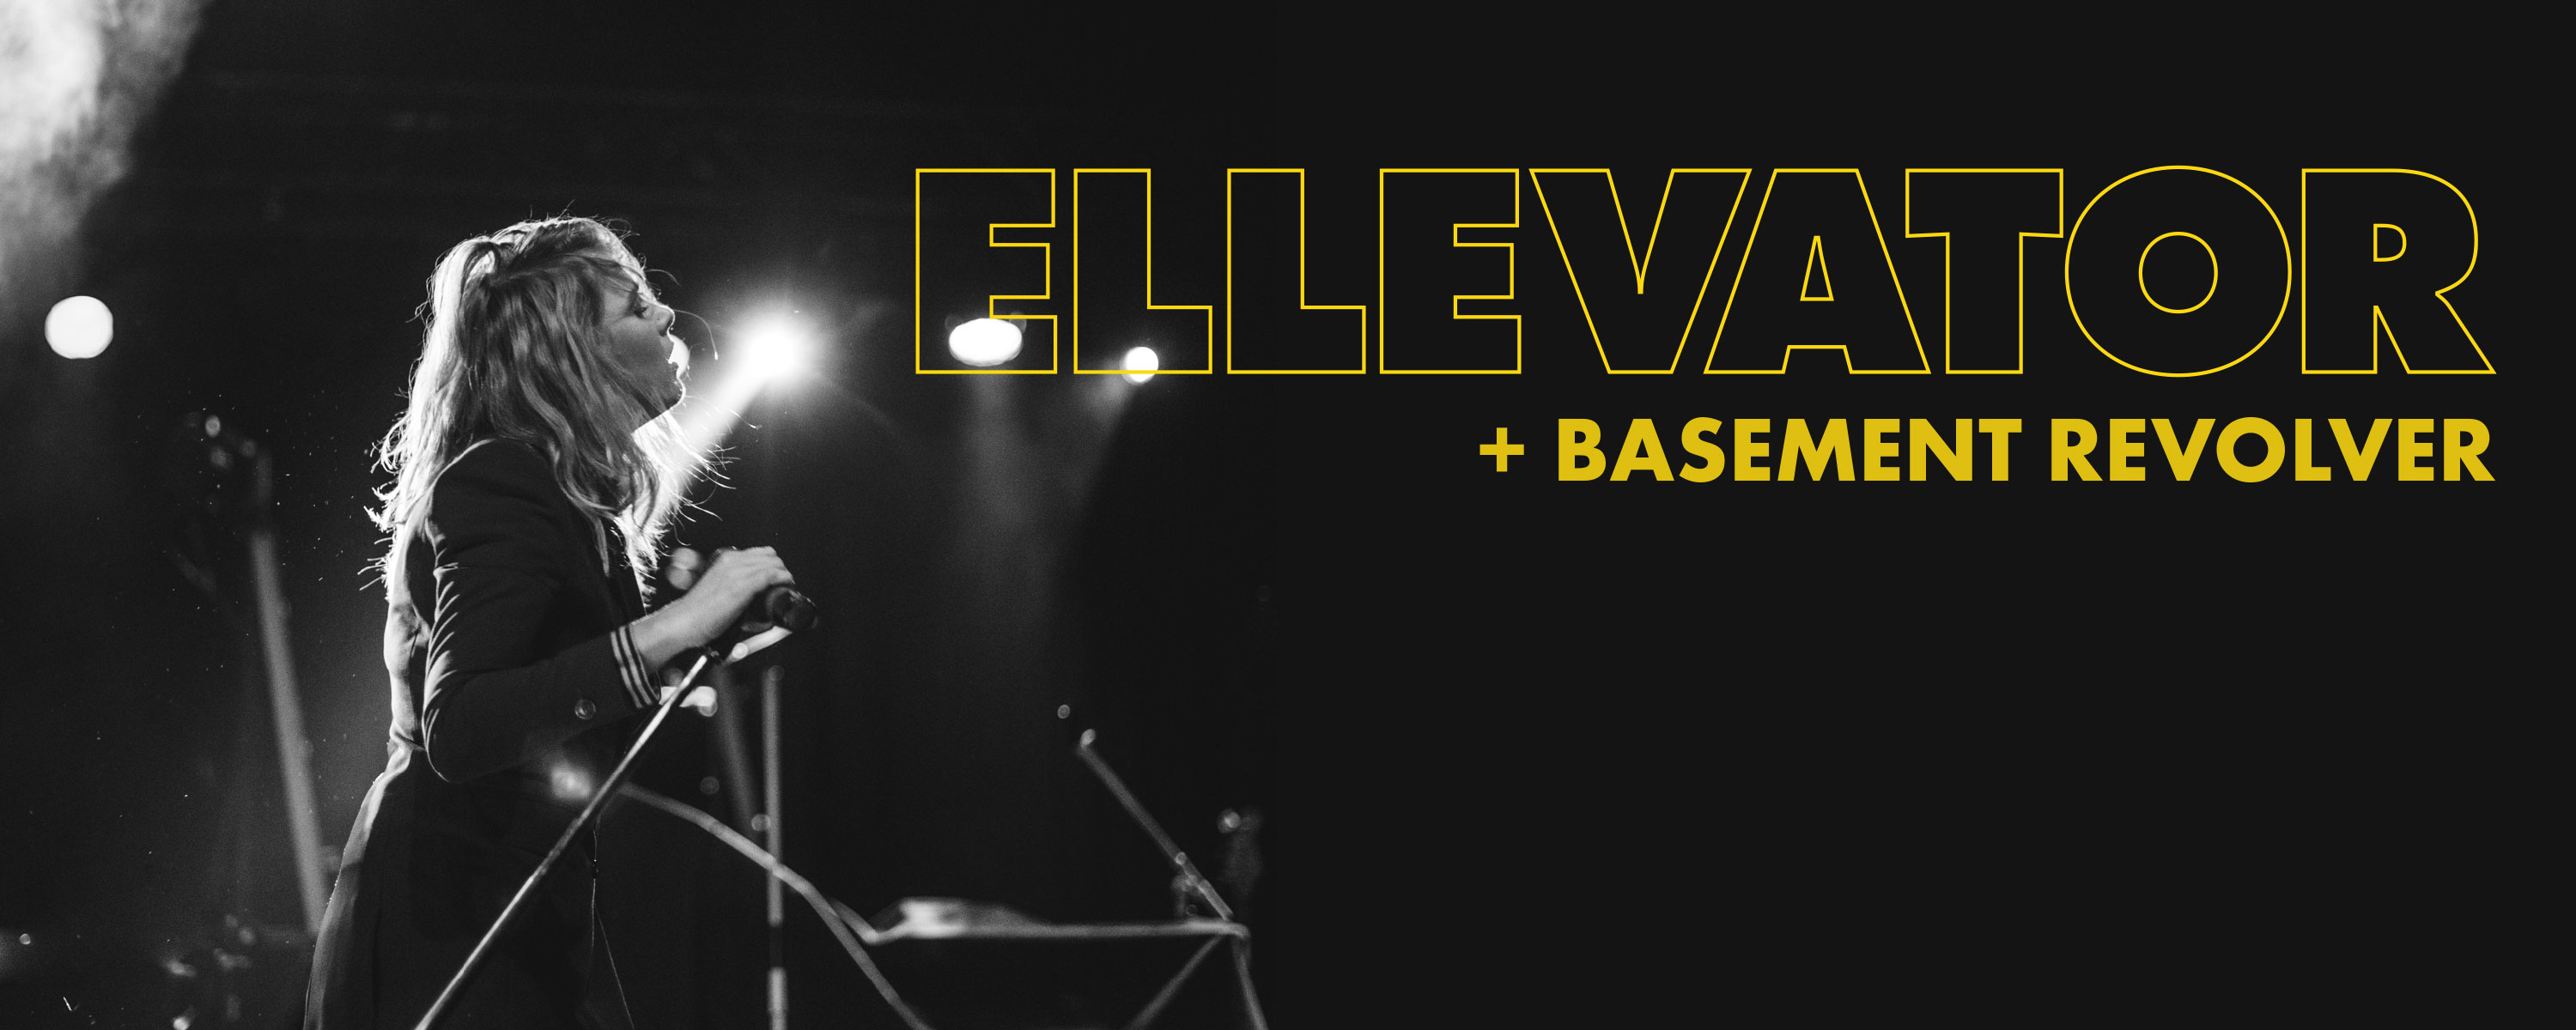 Riverfest Elora Presents: Ellevator & Basement Revolver